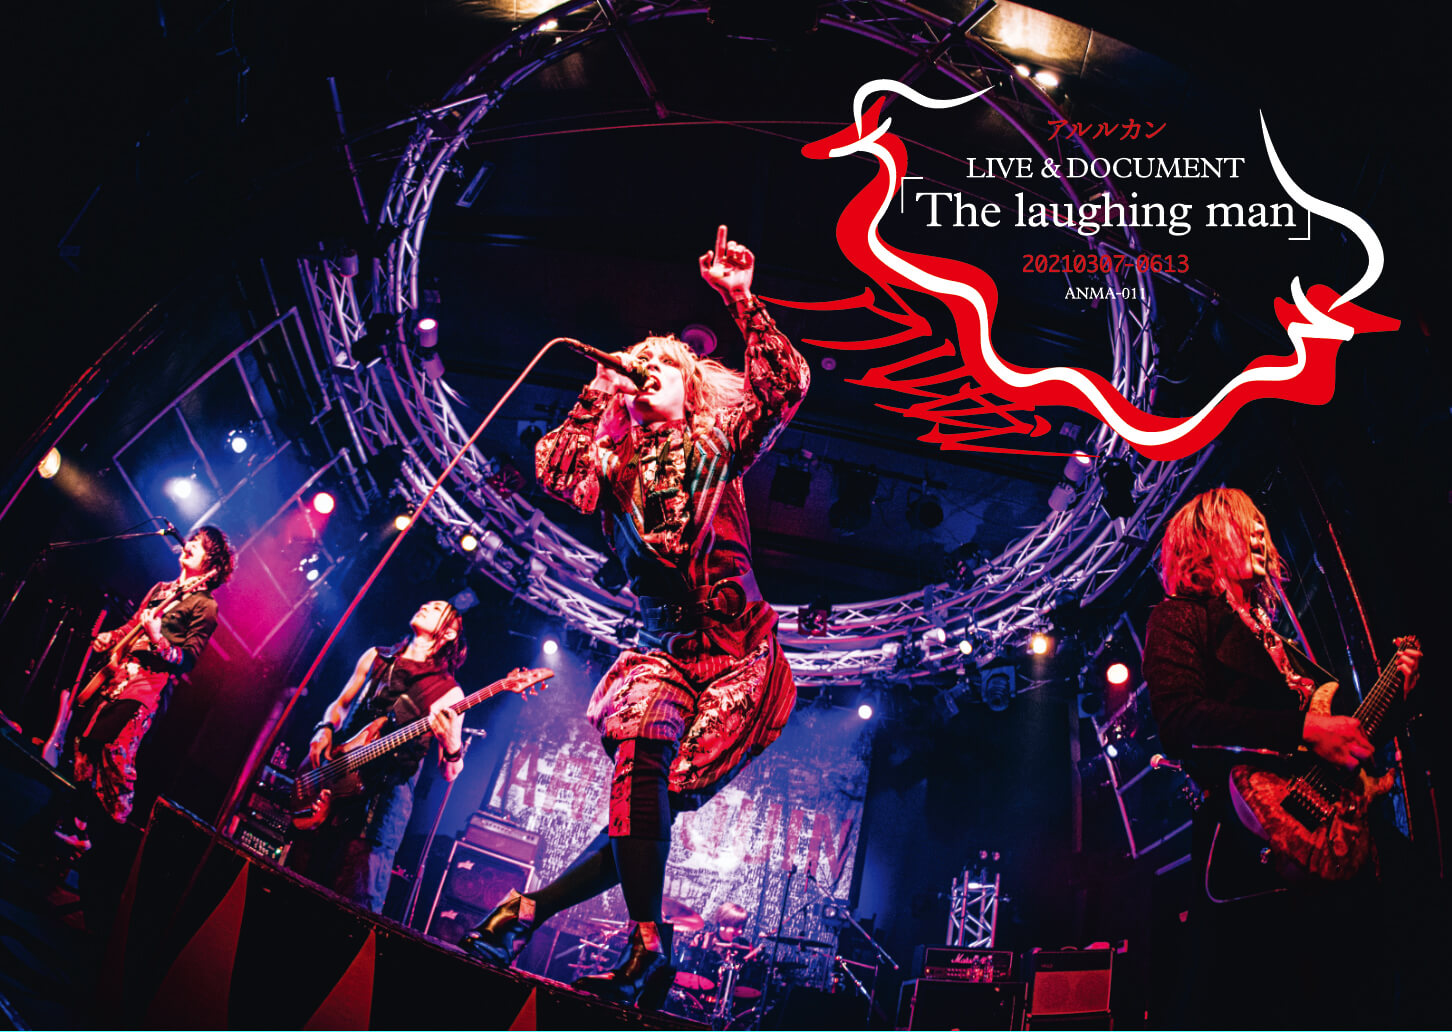 LIVE & DOCUMENT「The laughing man」